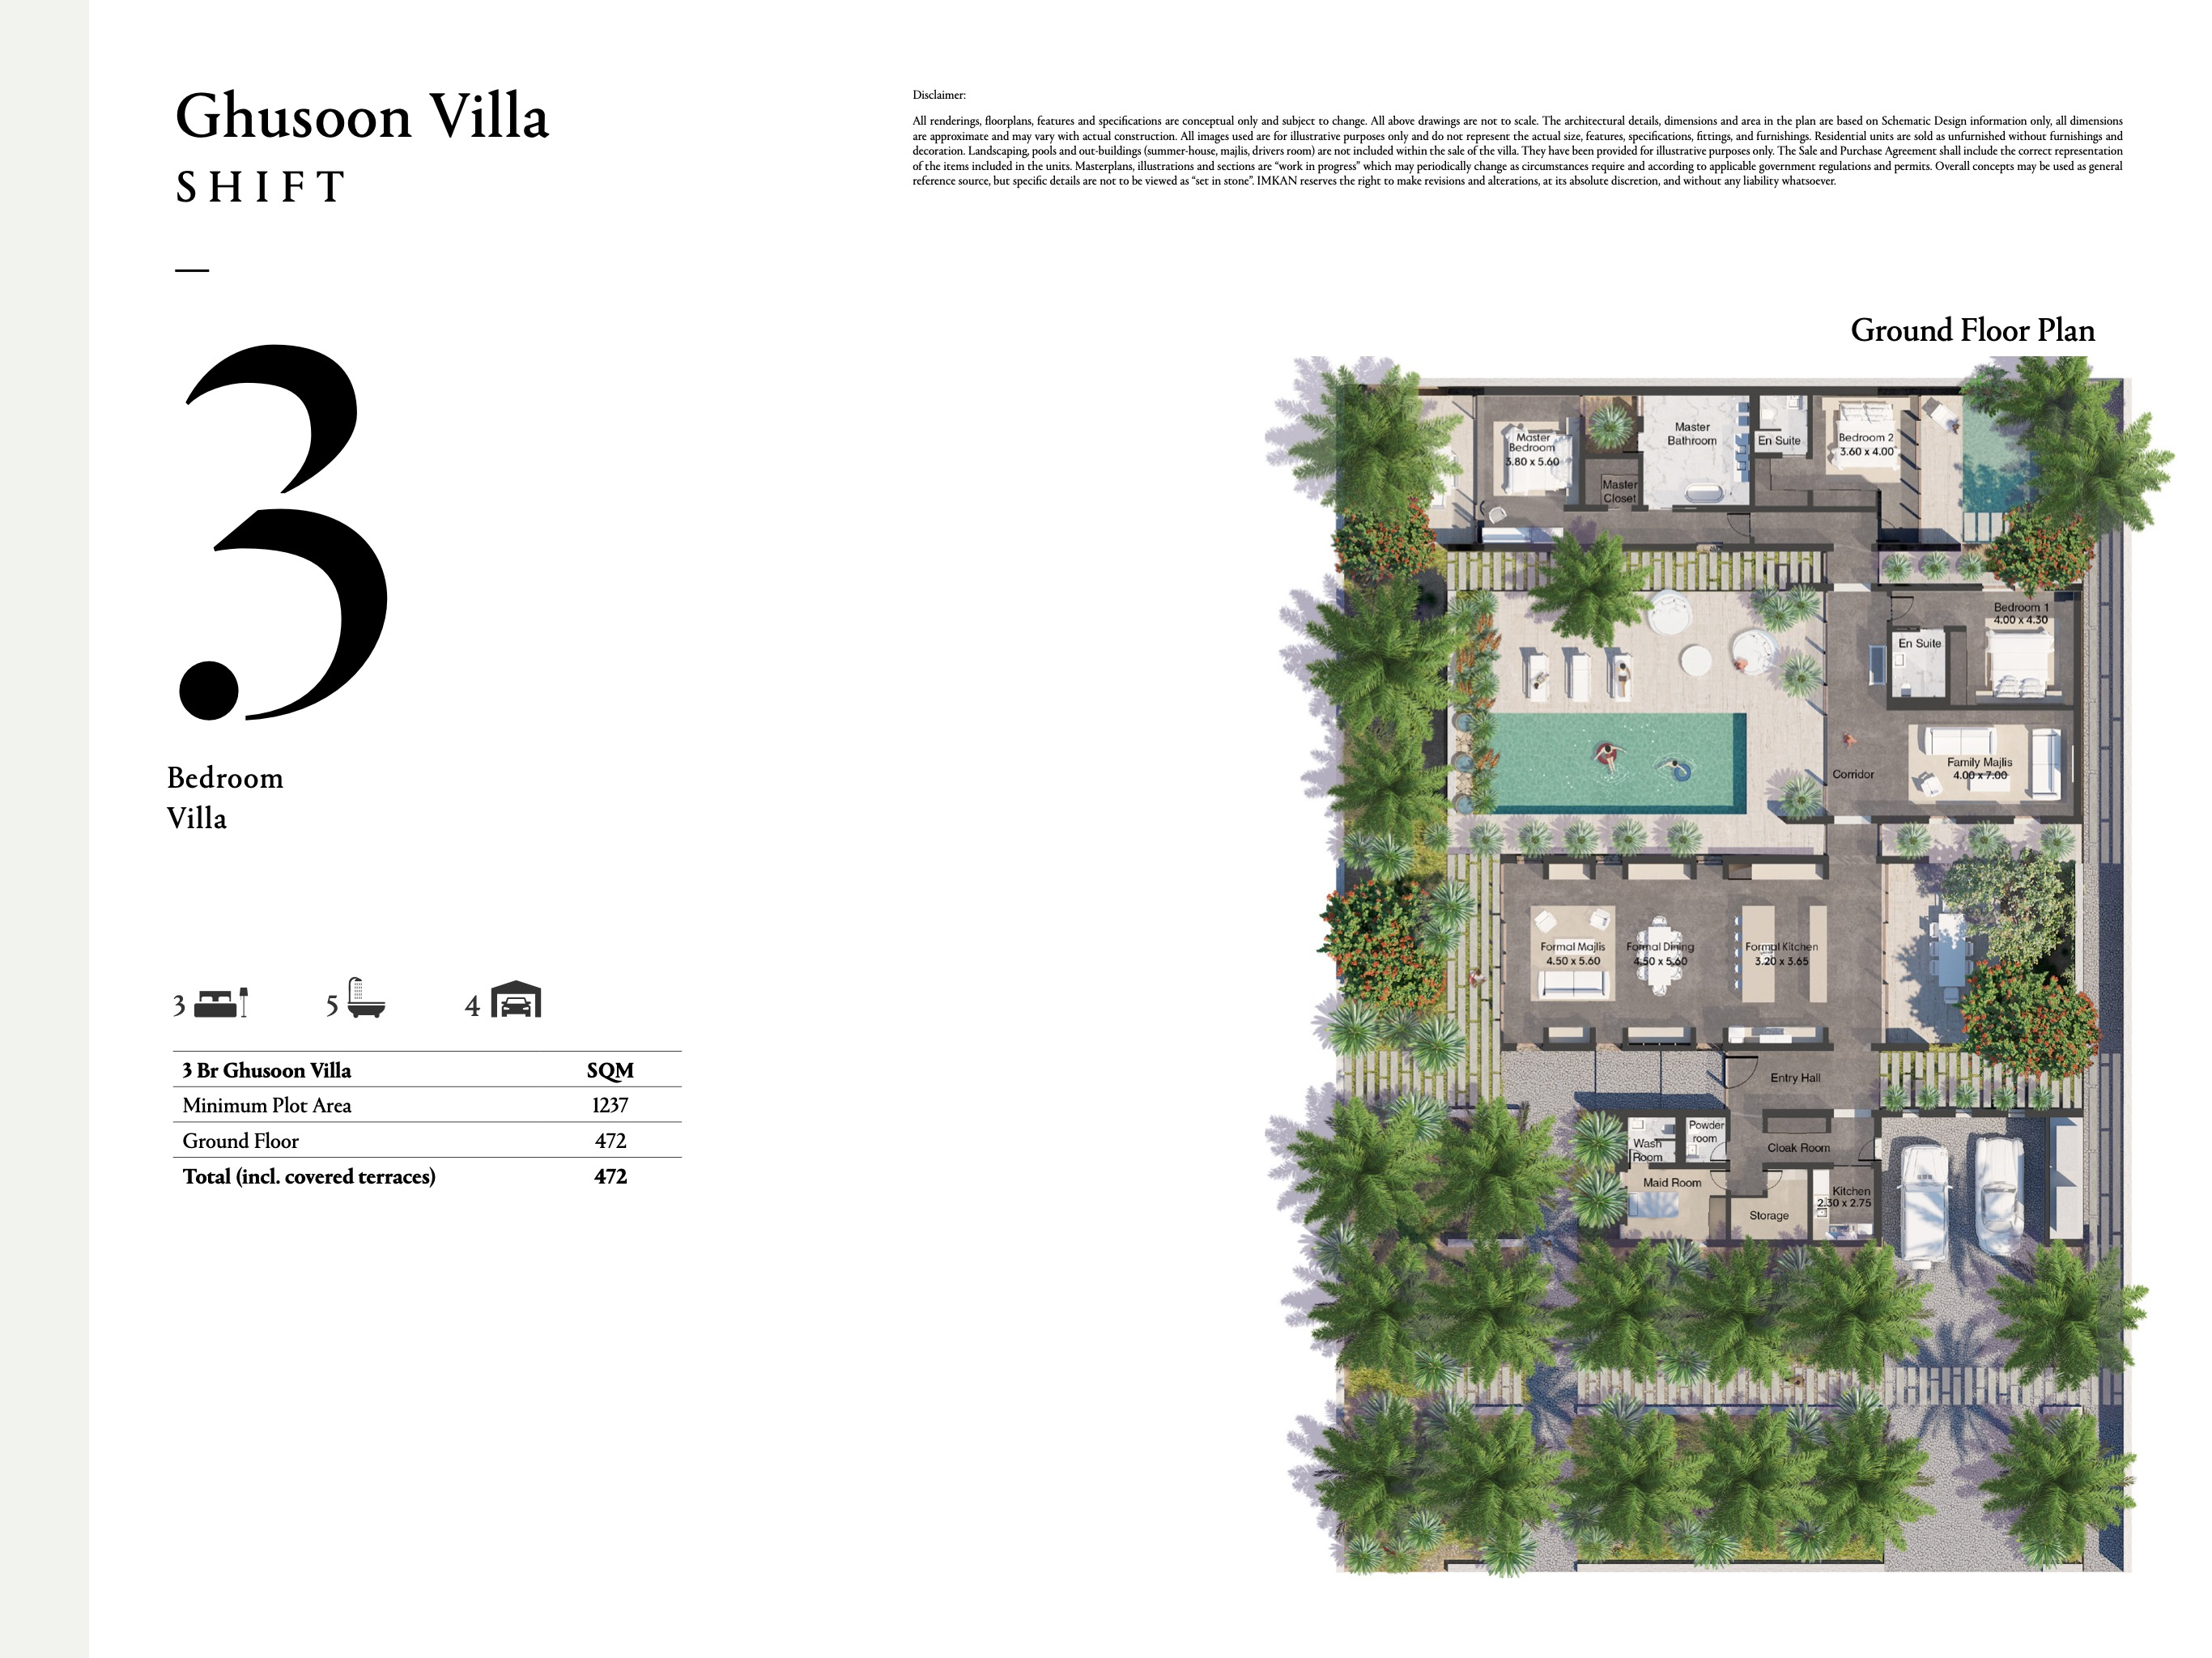 Ghusoon Villa - 3 Bedroom with a size area of 472 sqm